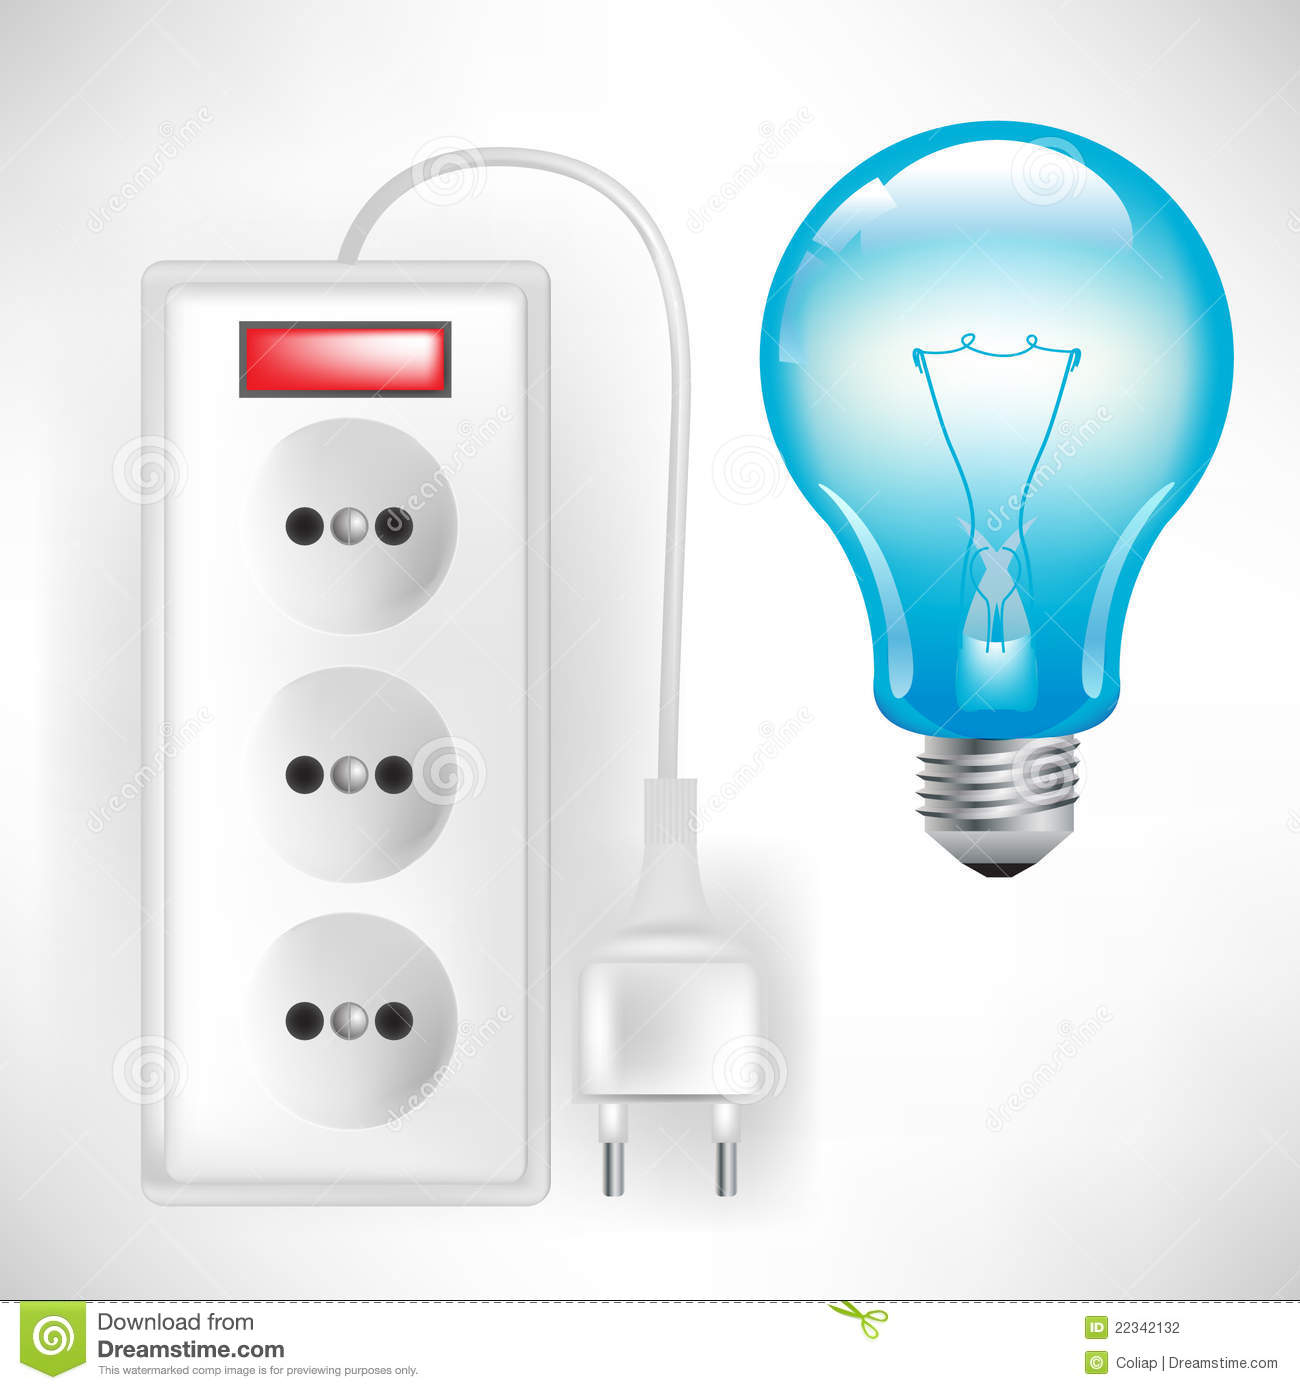 Electric Outlet With Cable And Light Bulb Stock Photography Image 22342132